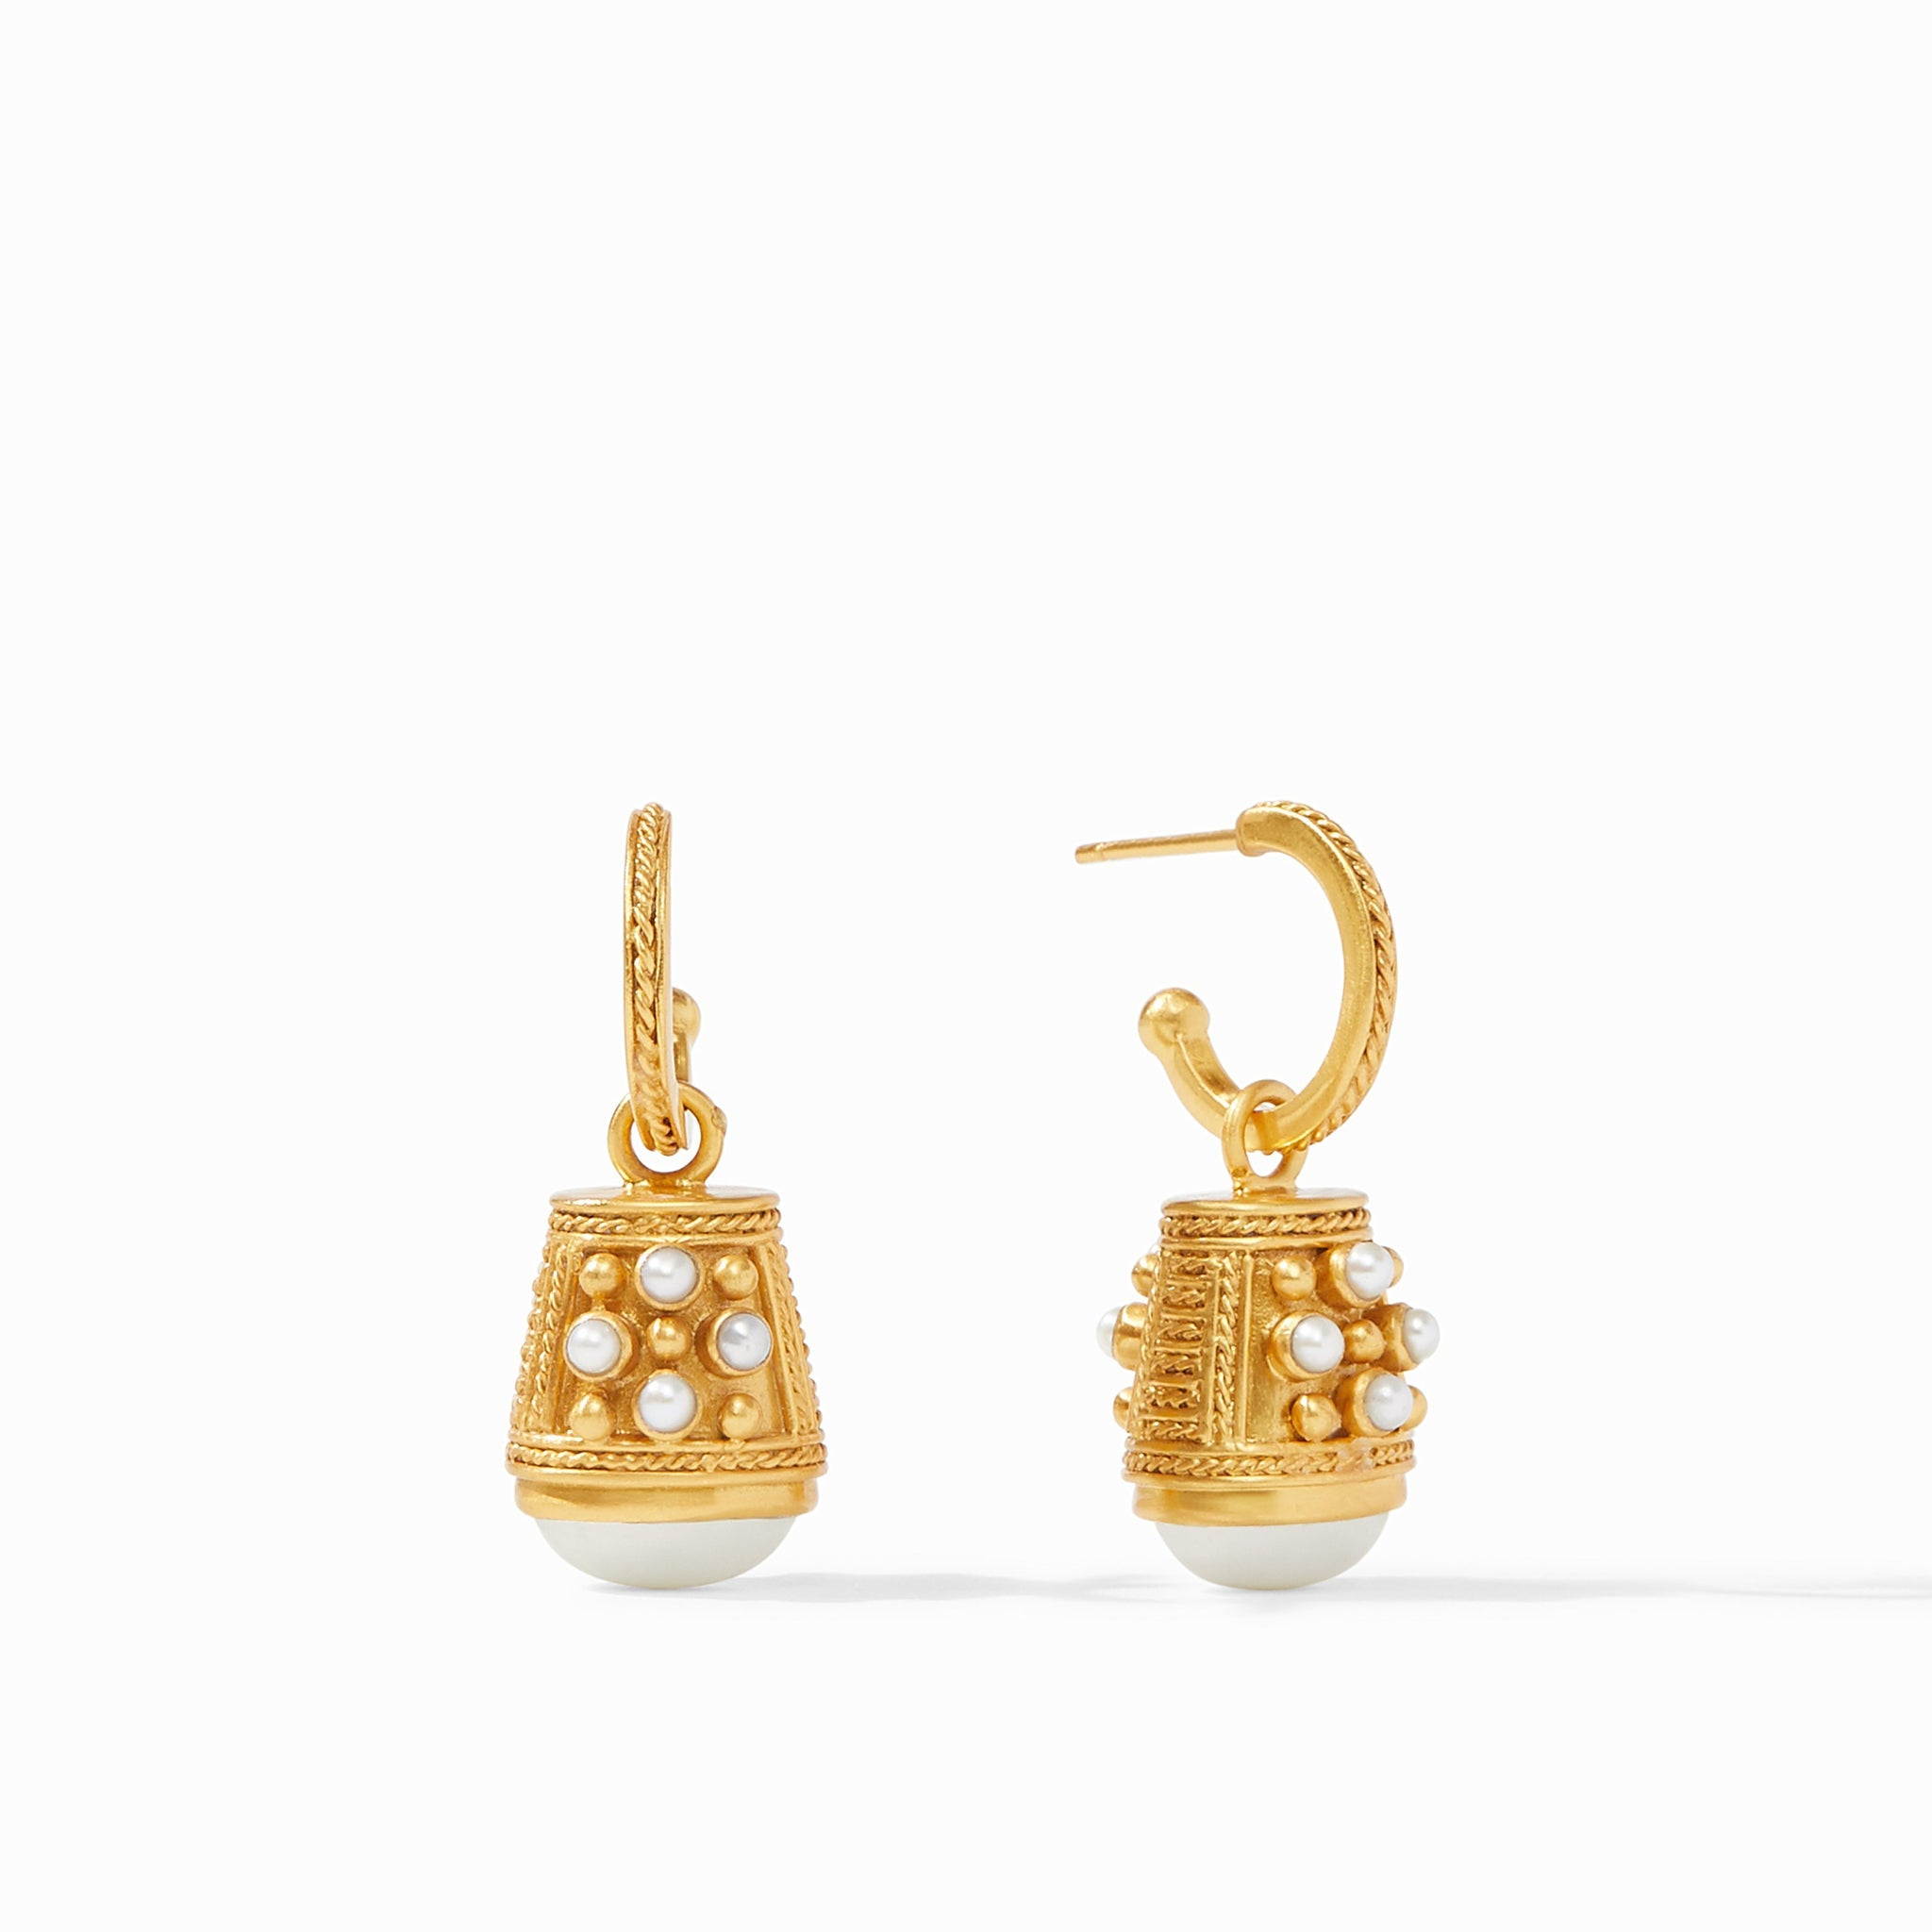 Paris Bell Charm Earring